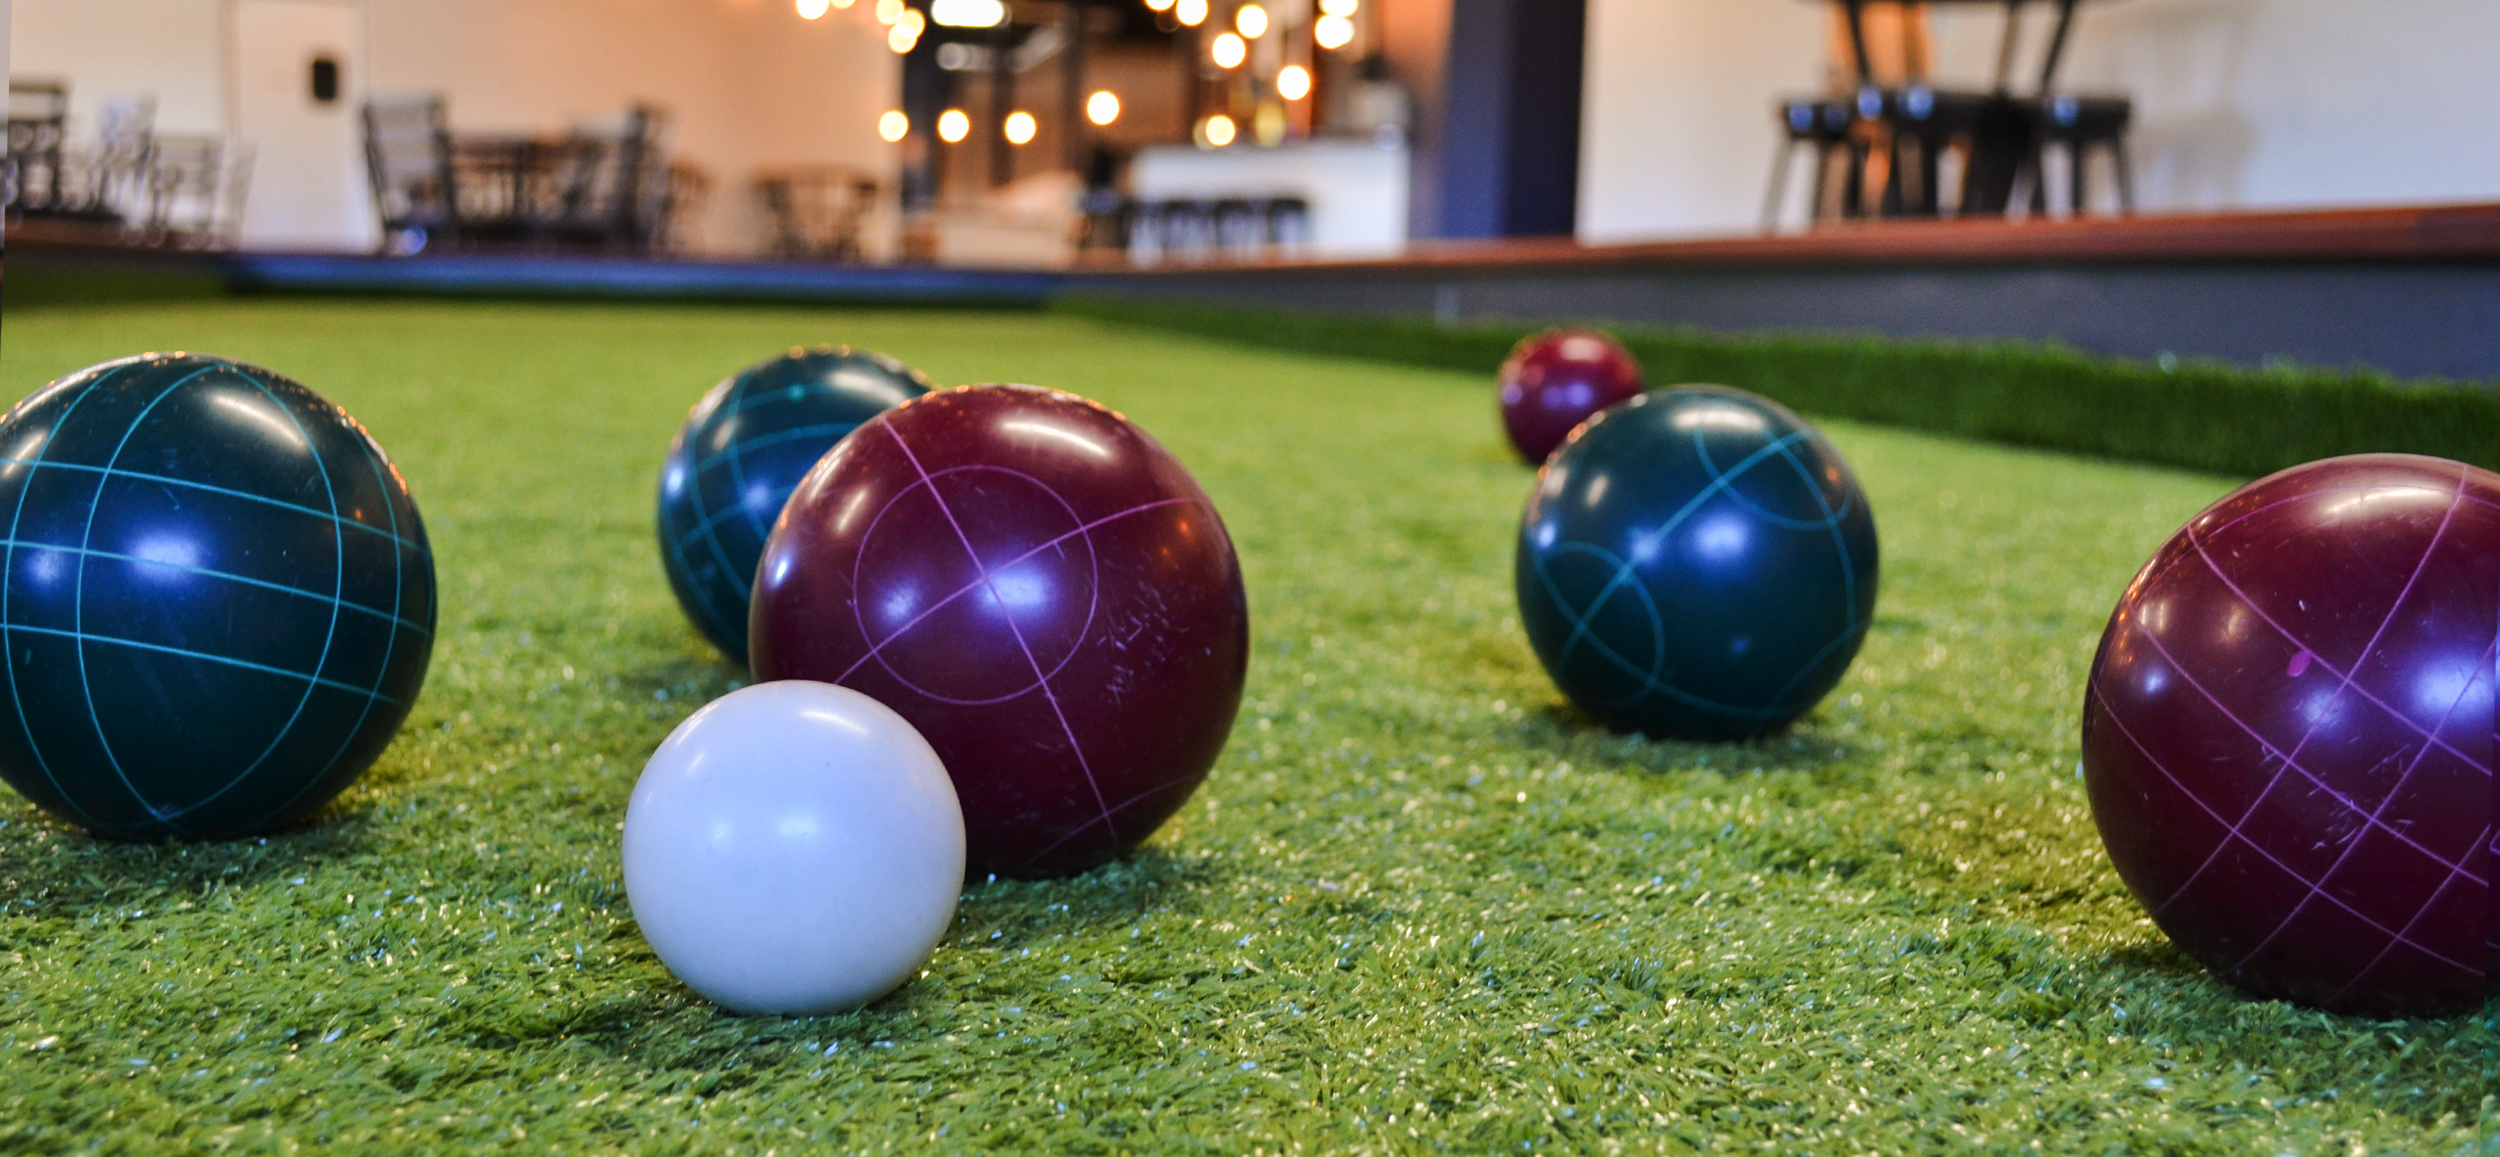 Bowling, Billiards, Darts, Bocce & More